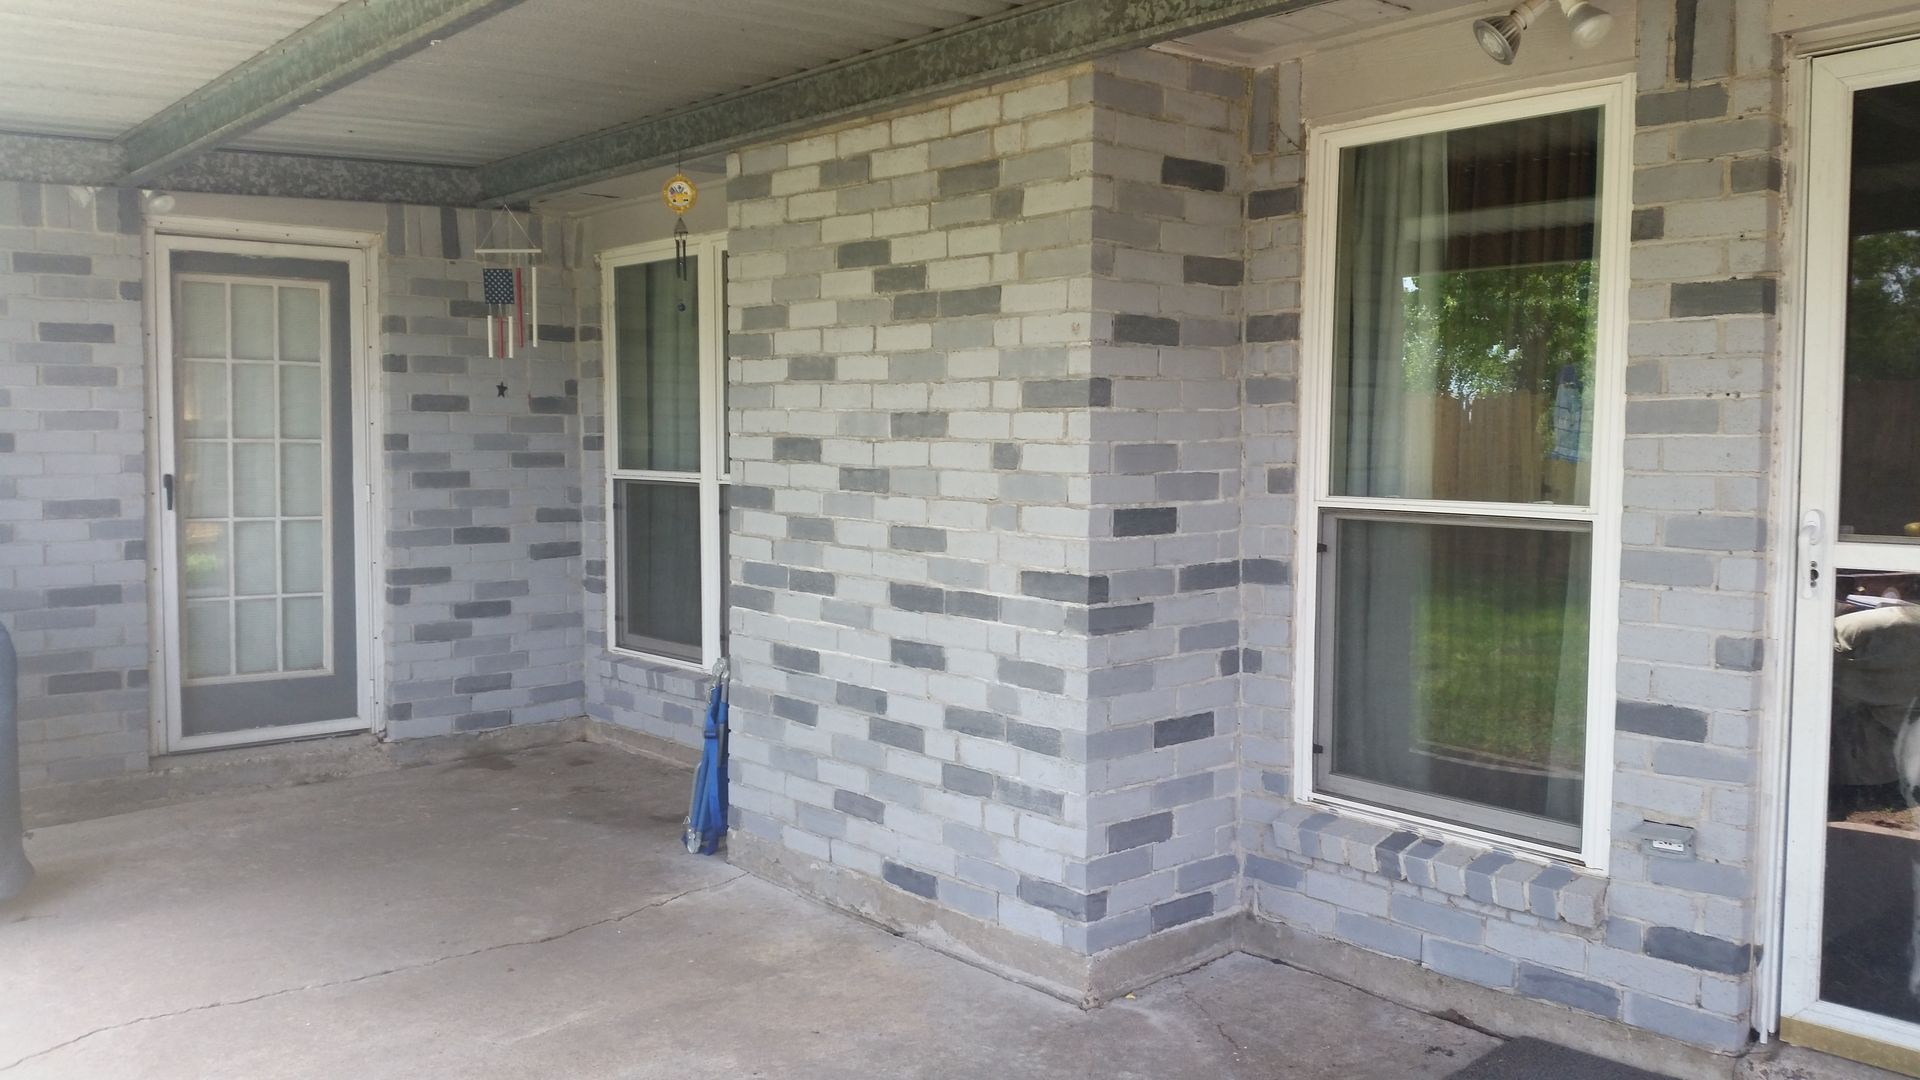 Brick cleaning brick staining brick improvement ideas - Staining brick exterior pictures ...